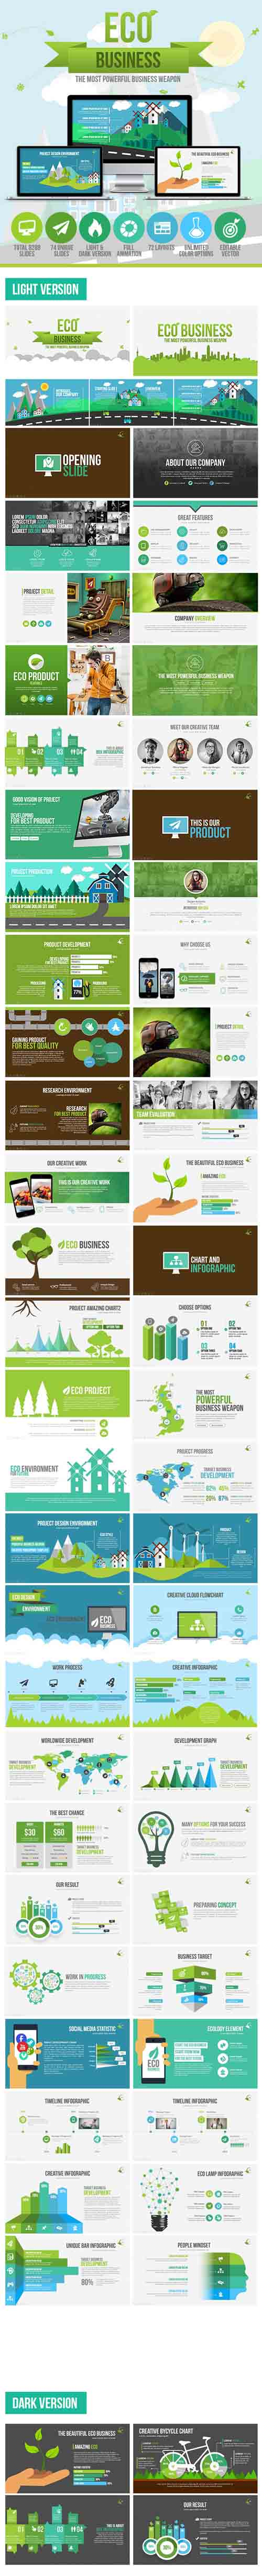 Eco Business Presentation Template 10527727